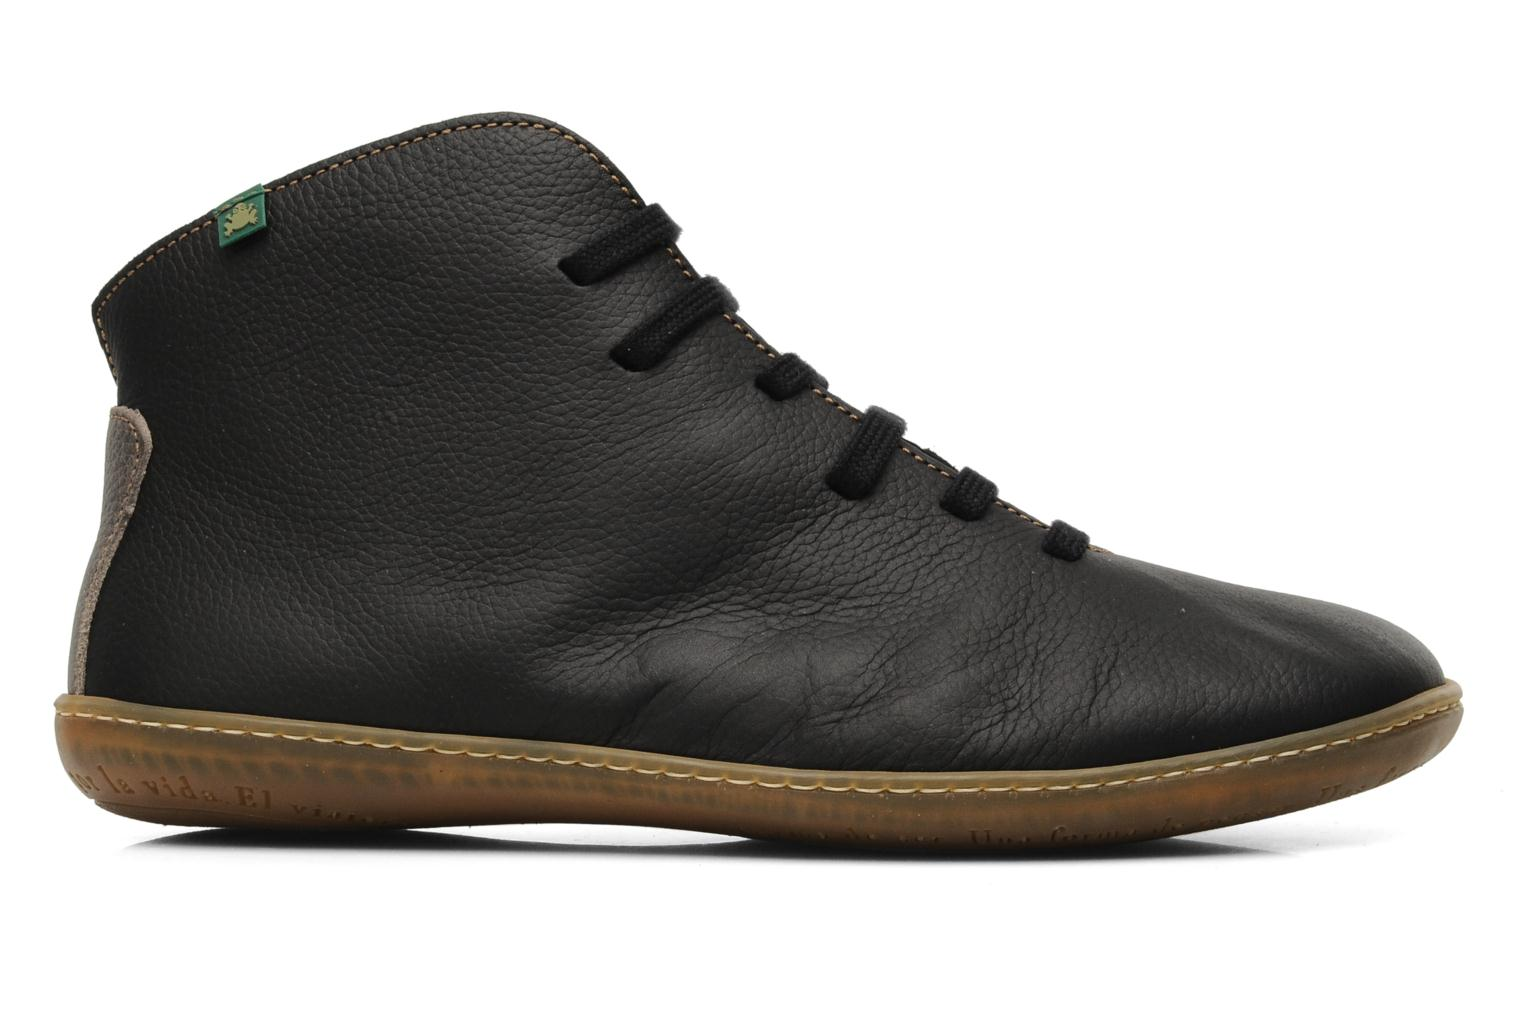 Viajero N267 M Black soft grain